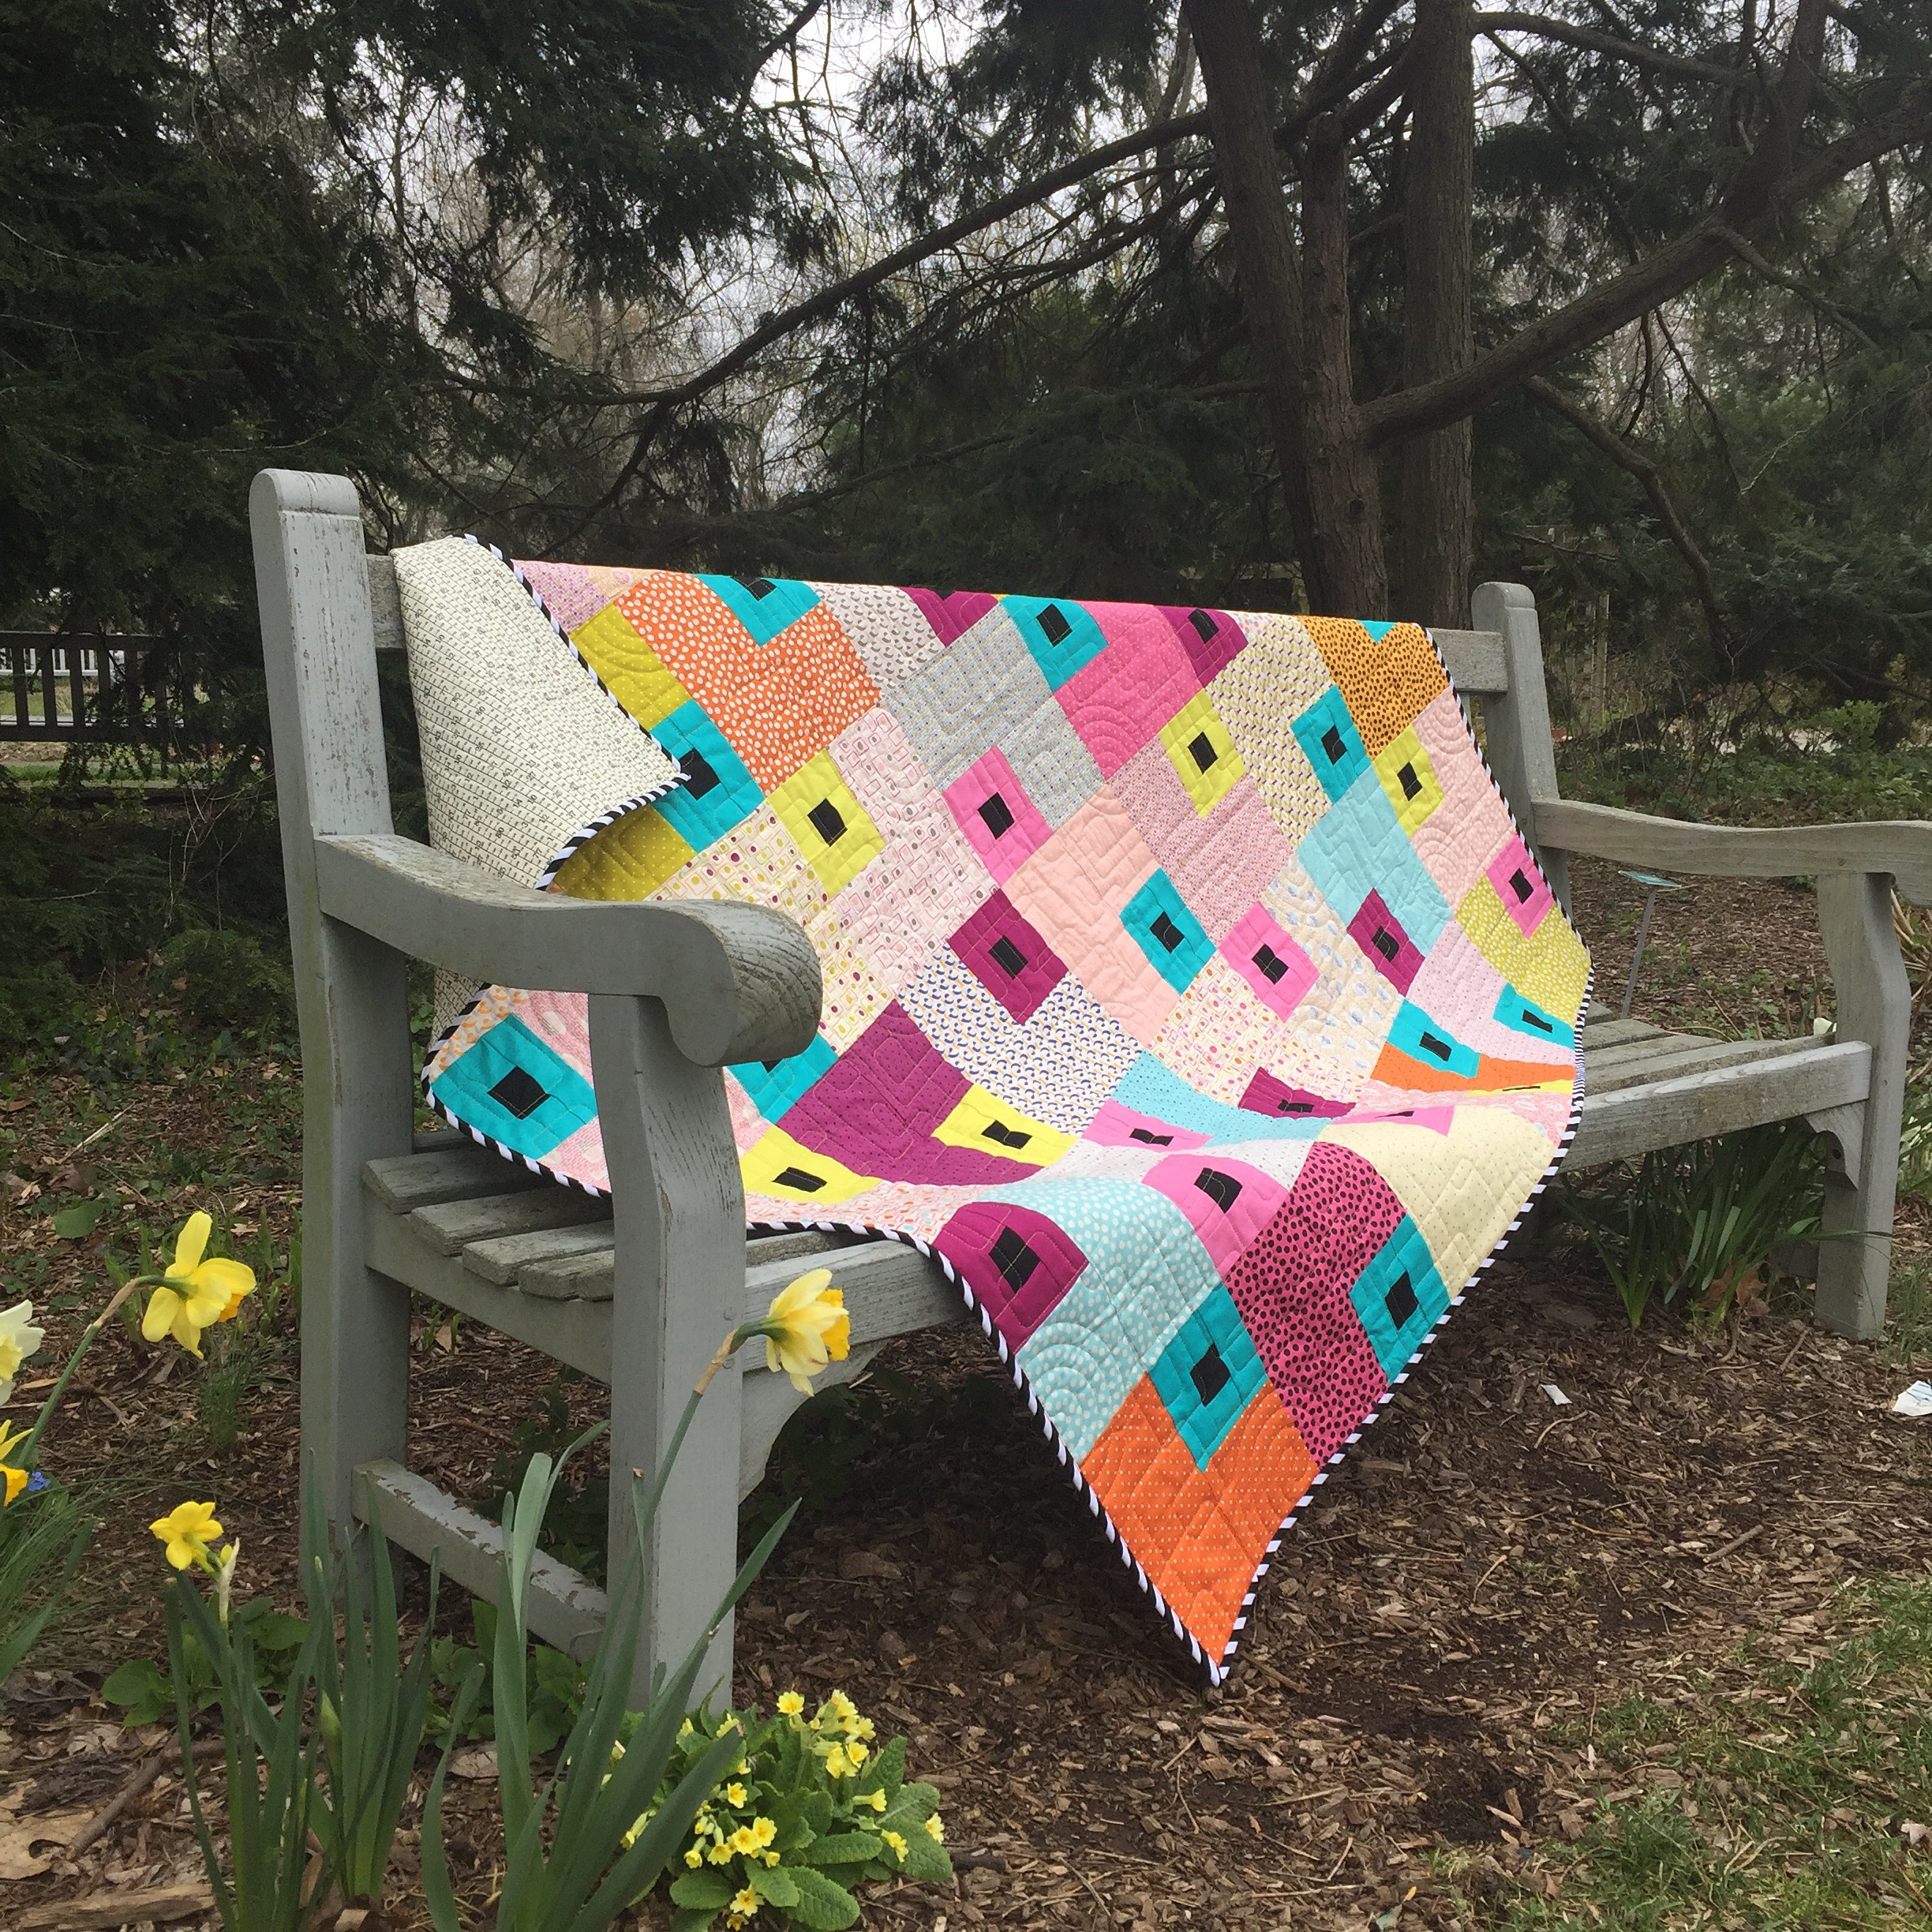 Jewel quilt for sale, made by Sharon McConnell, Color Girl quilts